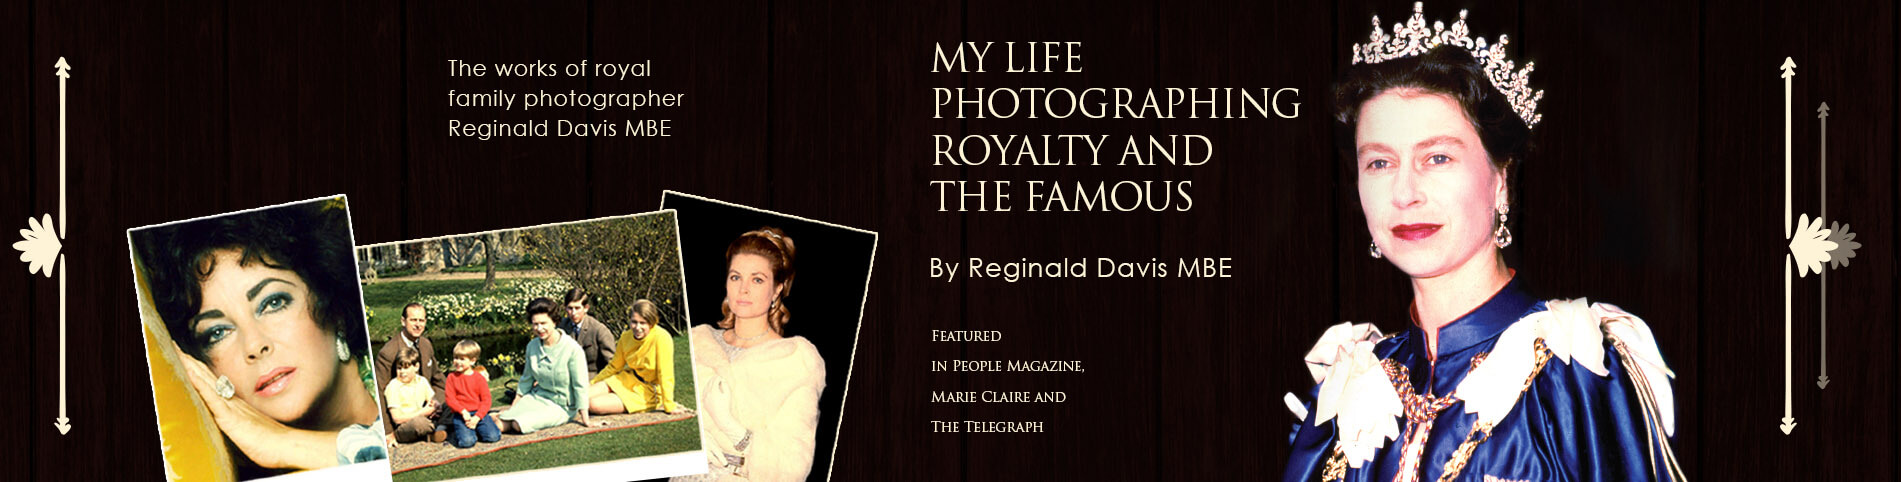 My life photographing royalty